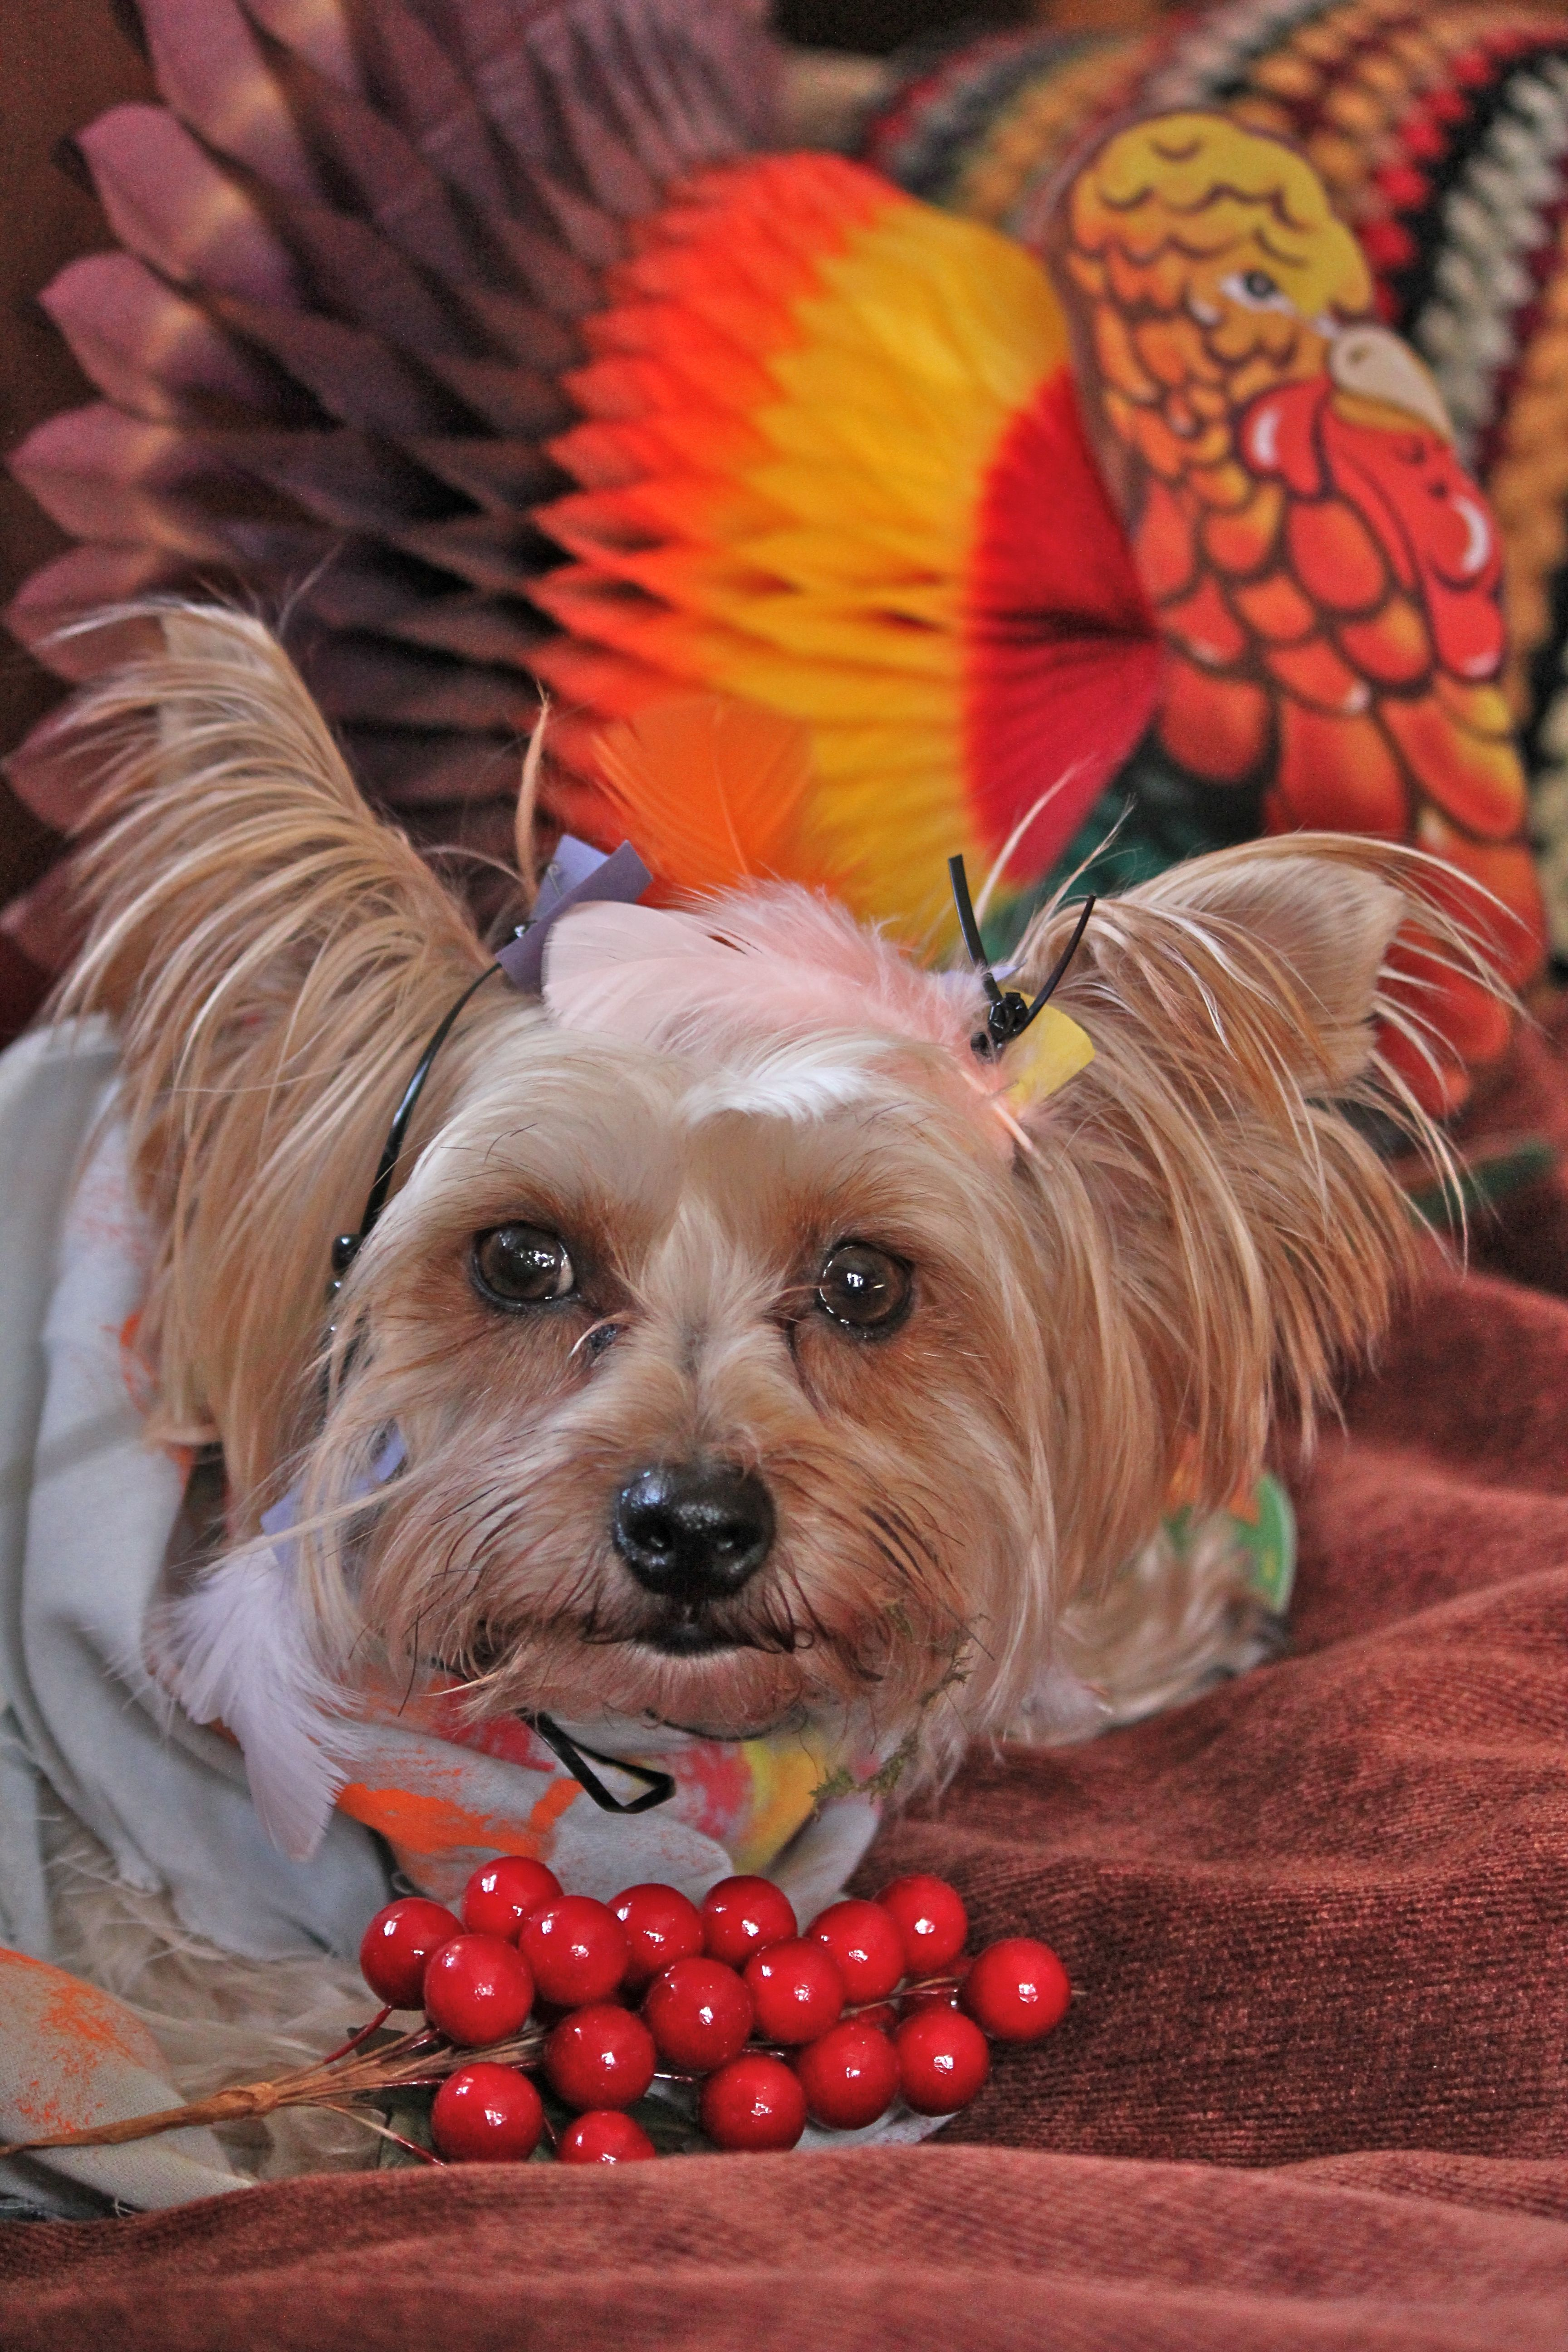 dog pics thanksgiving   ... dogs in costume tags dog costumes dog photography thanksgiving & dog pics thanksgiving   ... dogs in costume tags dog costumes dog ...